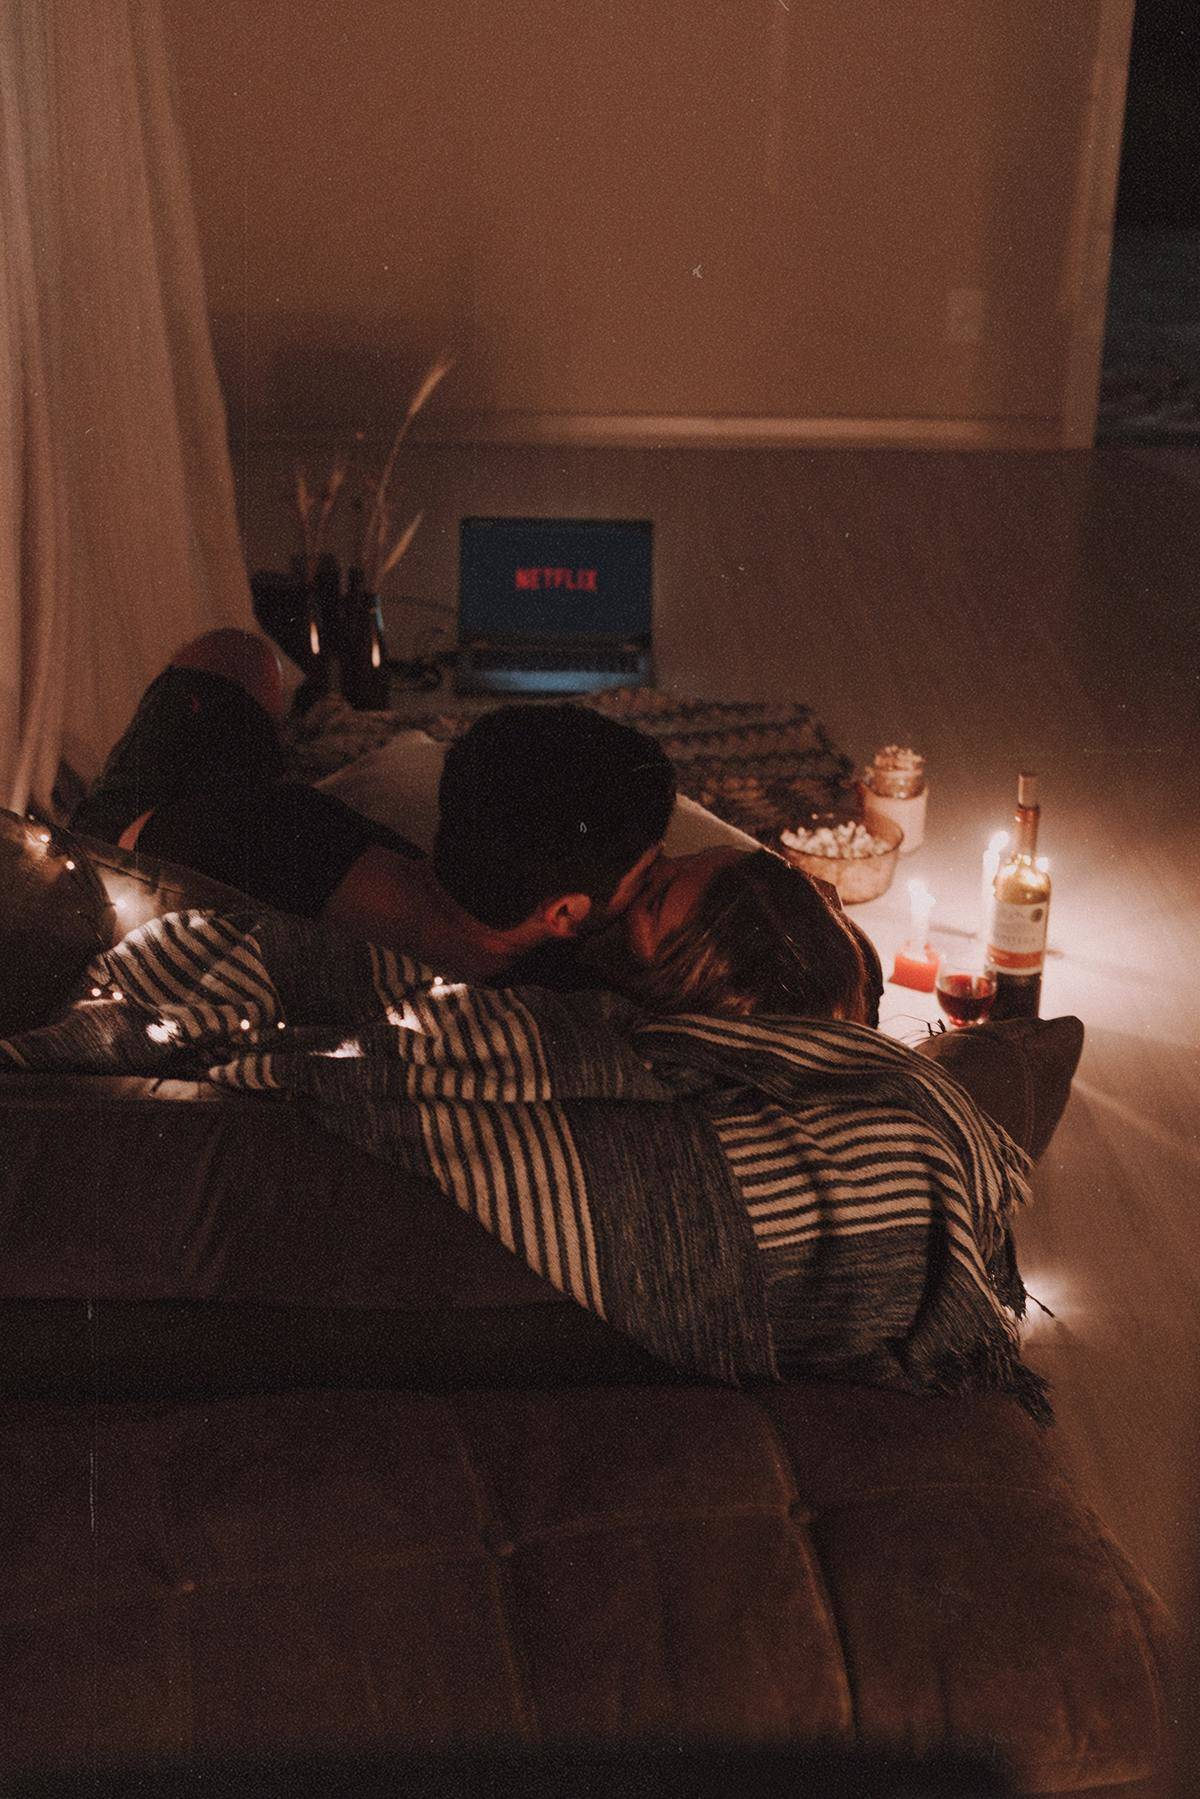 couple kissing on couch while watching Netflix